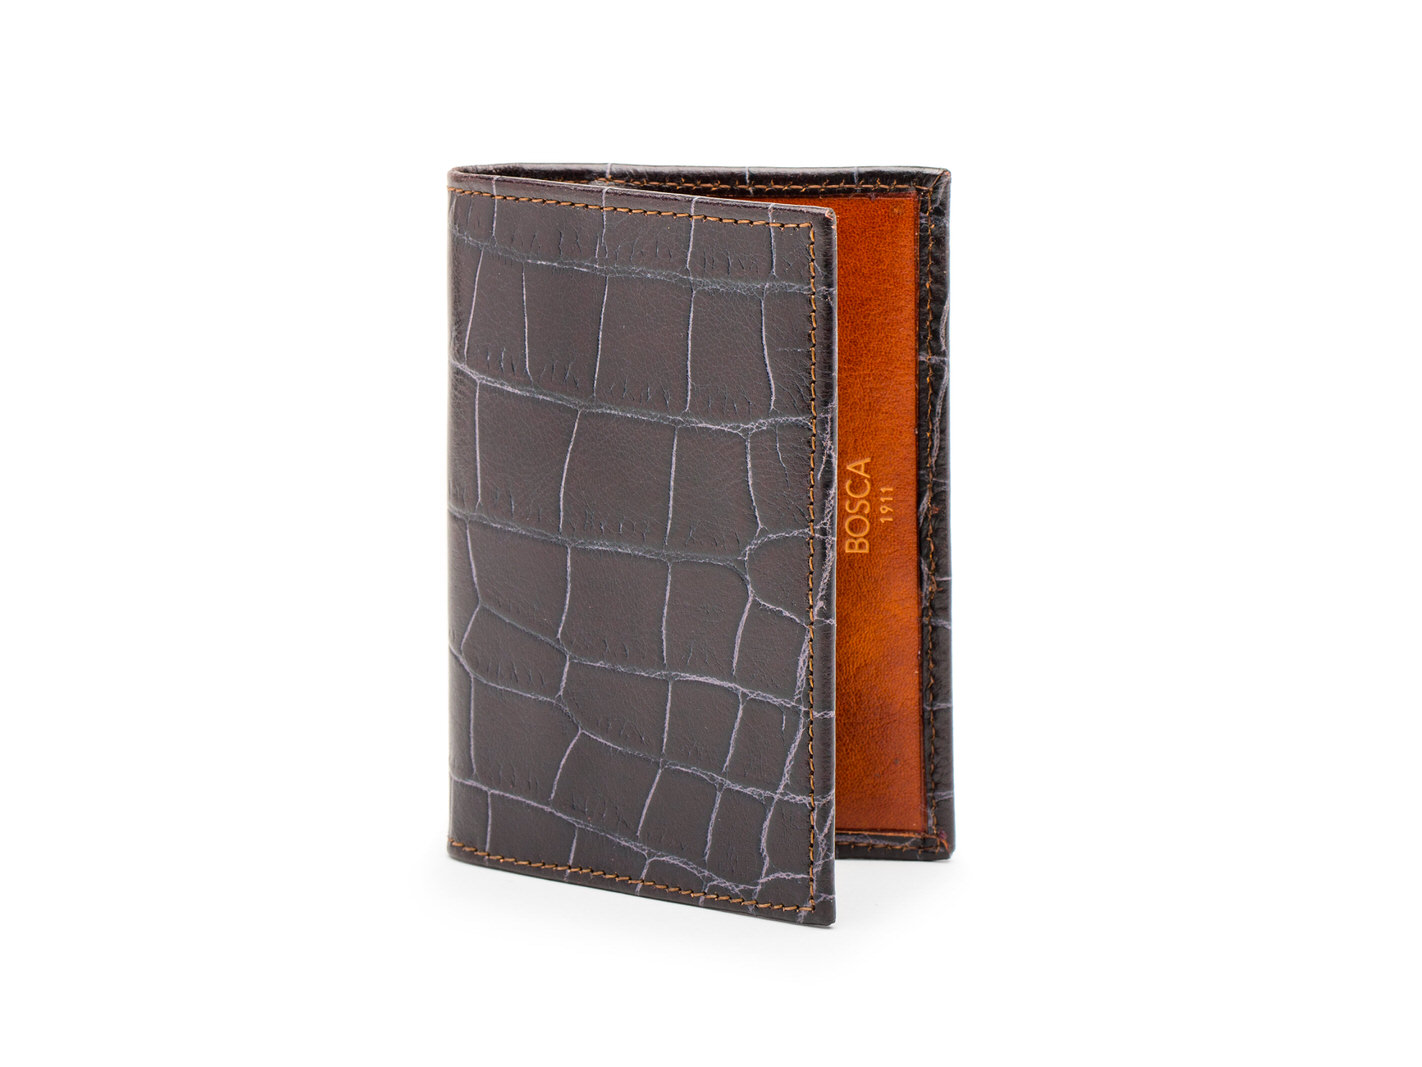 Calling Card Case-187 Brown/Amber - 187 Brown/Amber